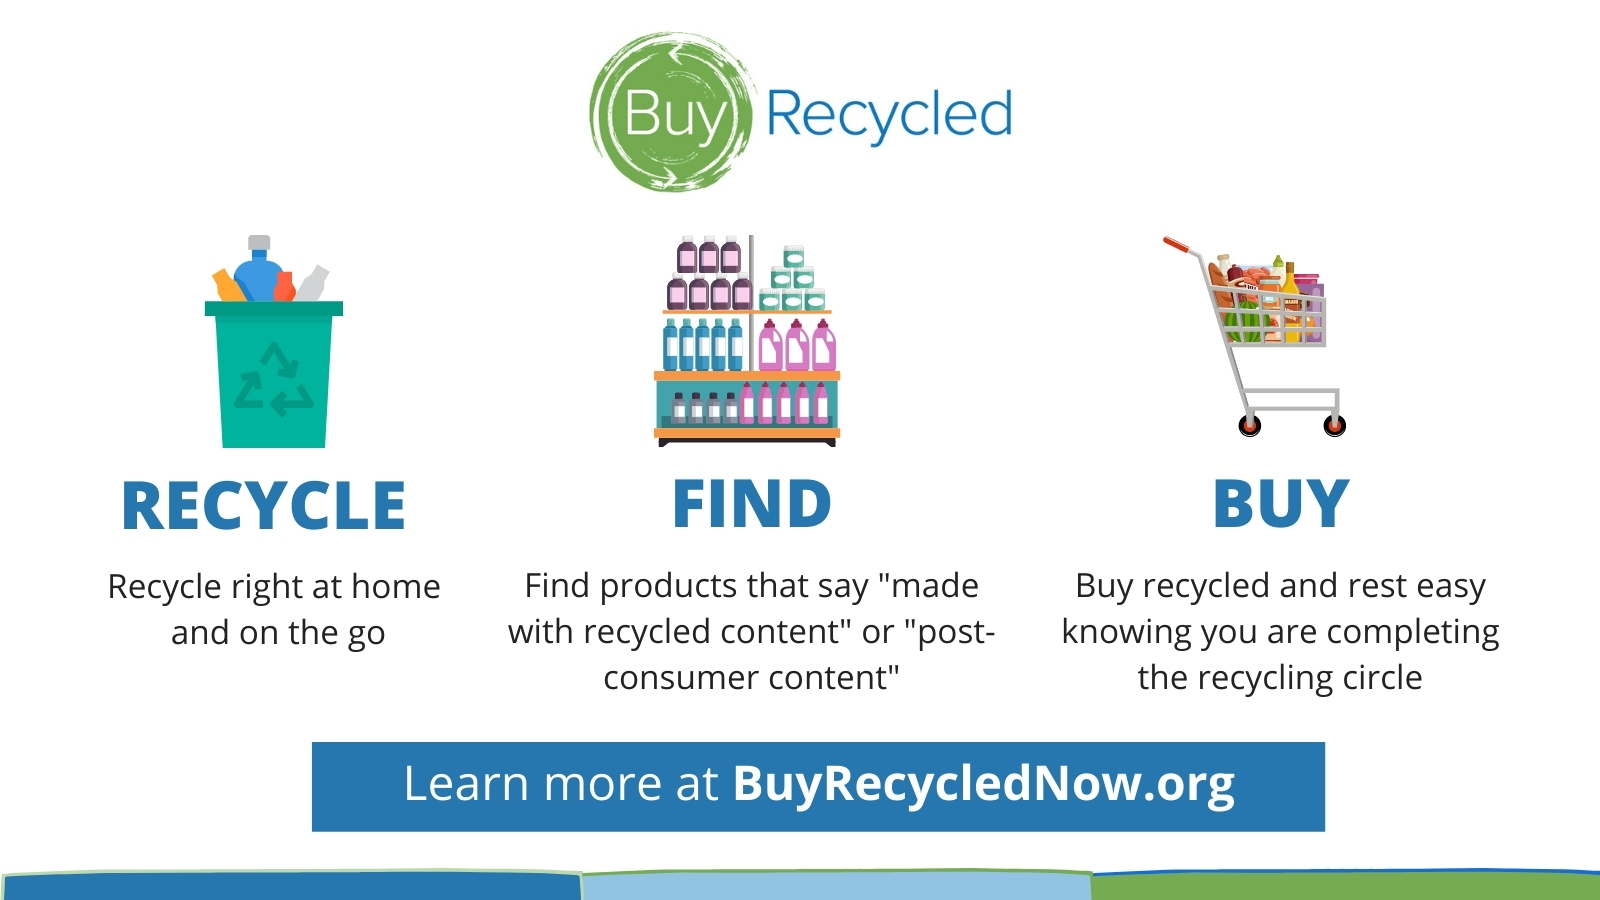 Step 1: Recycle Right at home and on the go. Step 2: Find recycled products when you're shopping. Step 3: Buy recycled to complete the recycling cycle